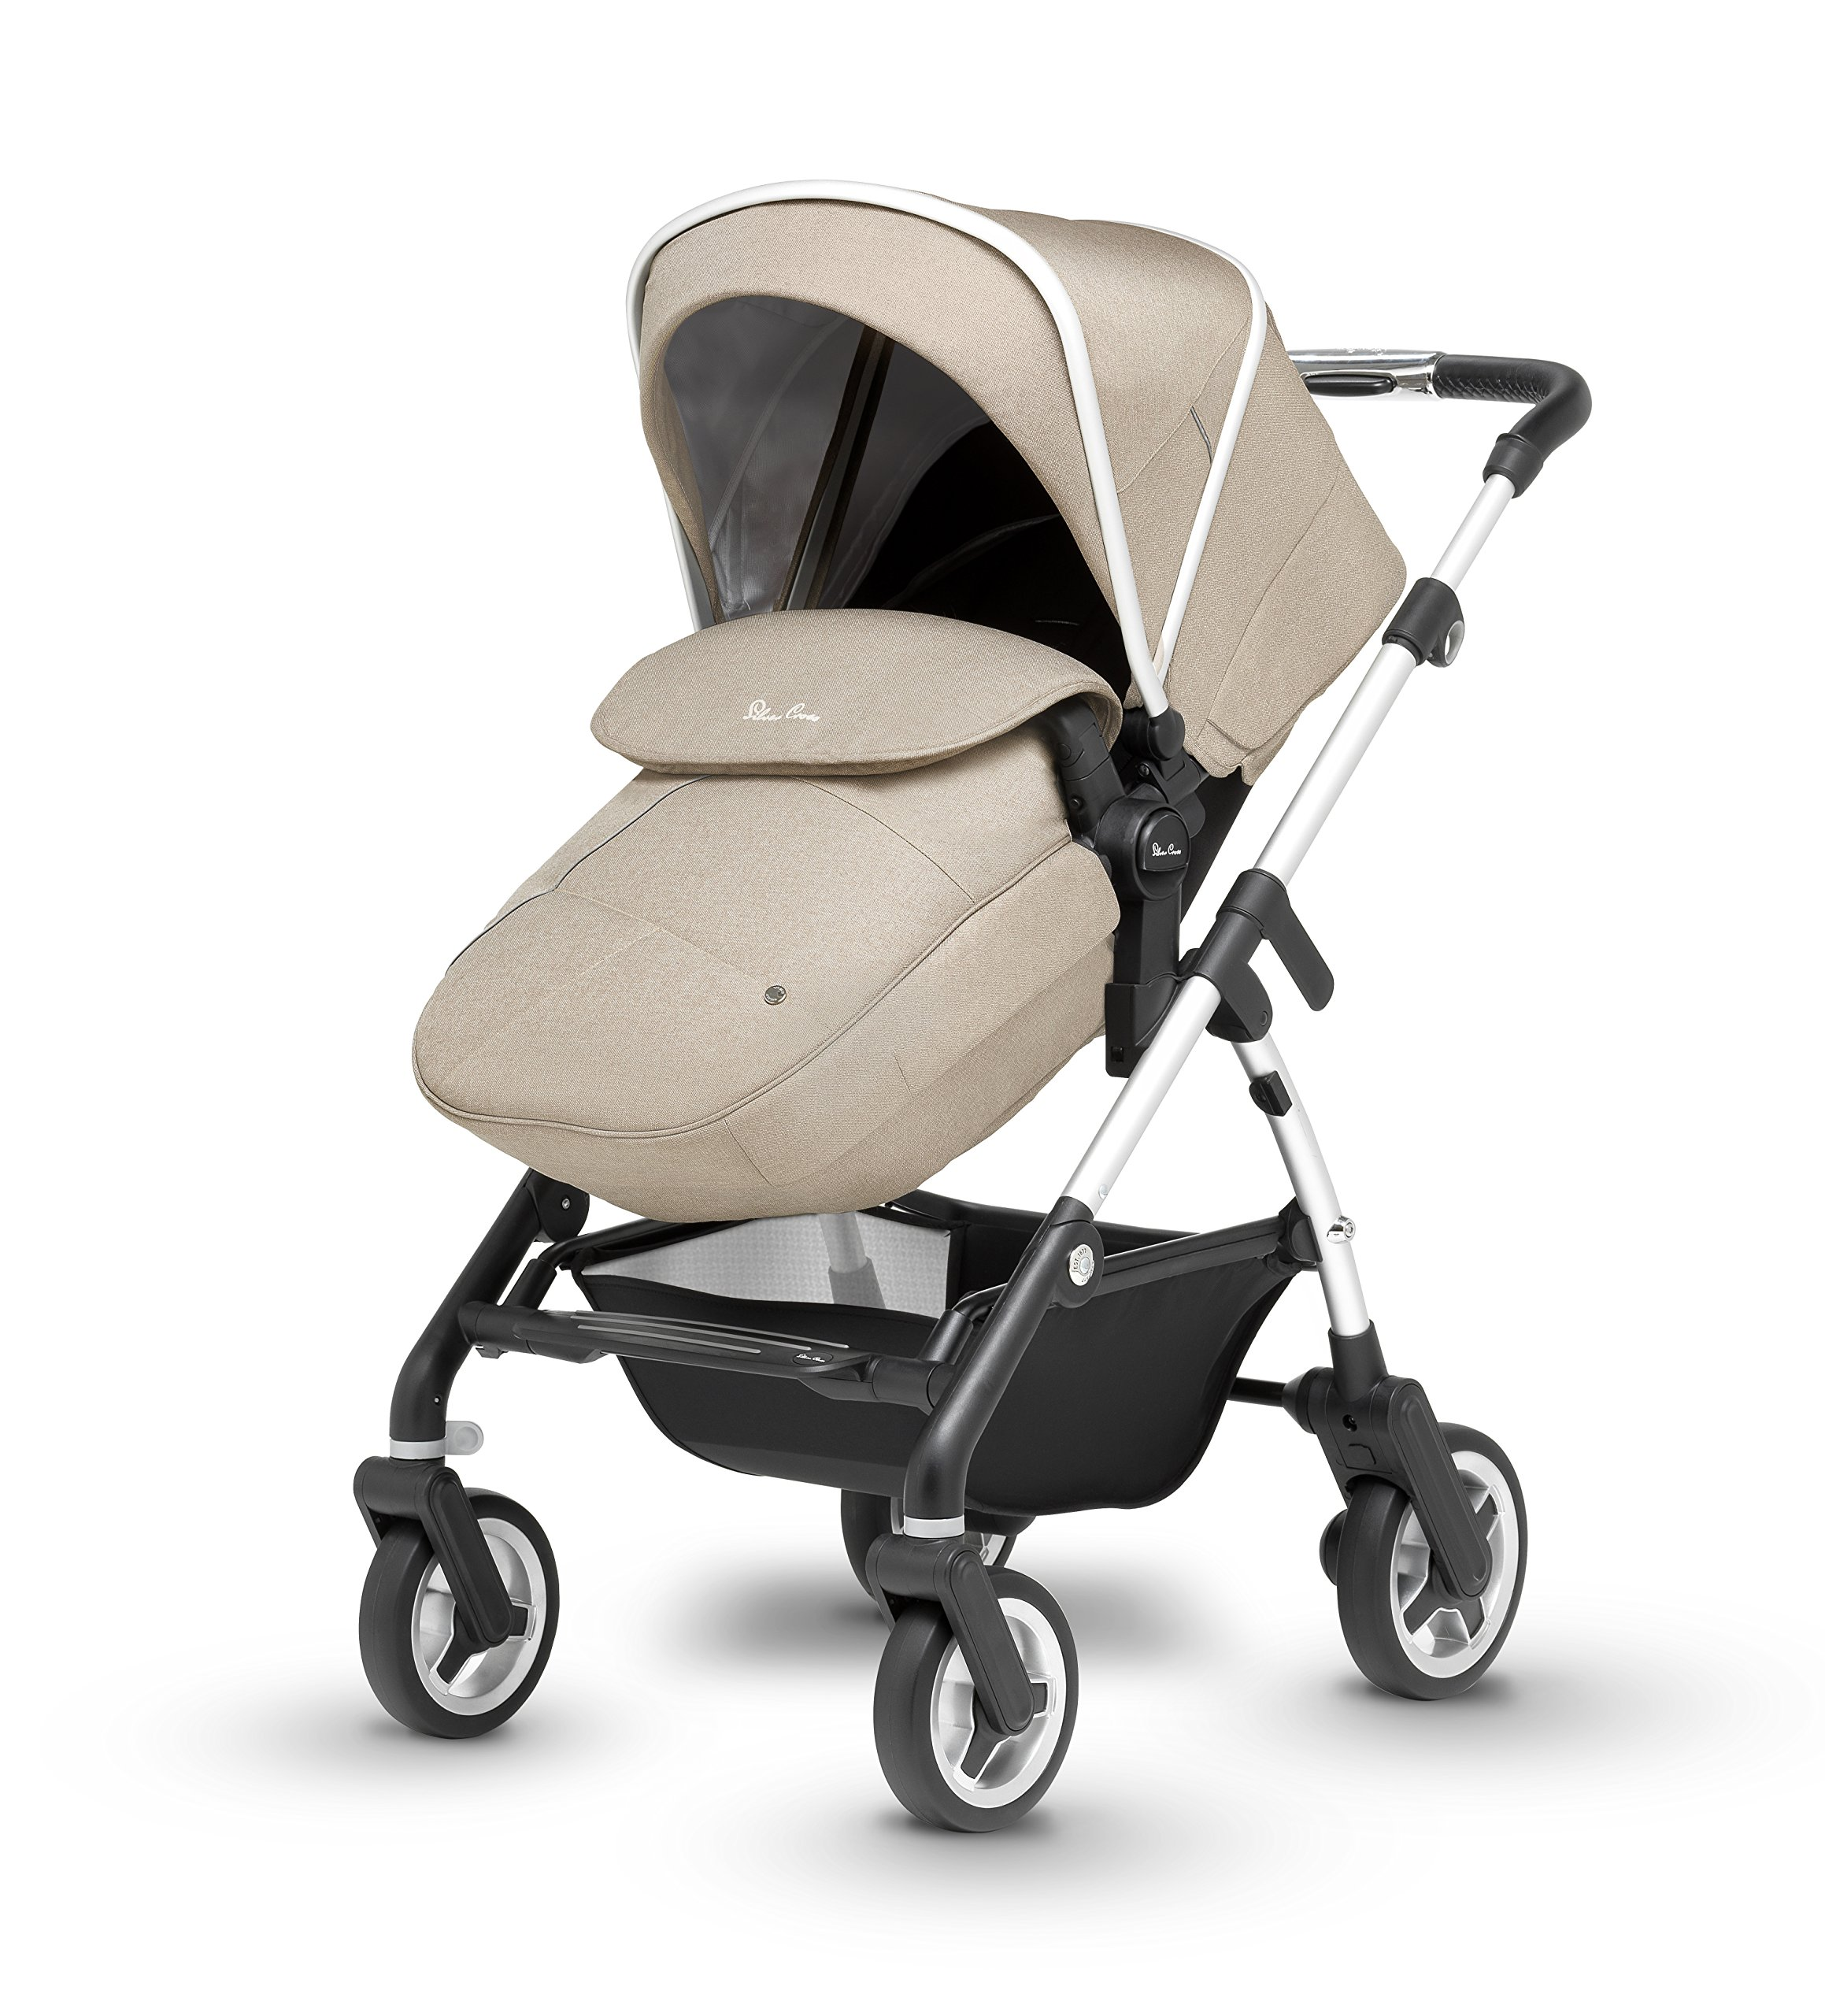 Silver Cross Wayfarer Pushchair and Carrycot, Linen Silver Cross A complete Pram system that includes everything you need from birth to toddler Includes a lie-flat Carrycot for your new born that is suitable for overnight sleeping Includes a fully, reversible Pushchair seat unit, suitable up to 25kg 3